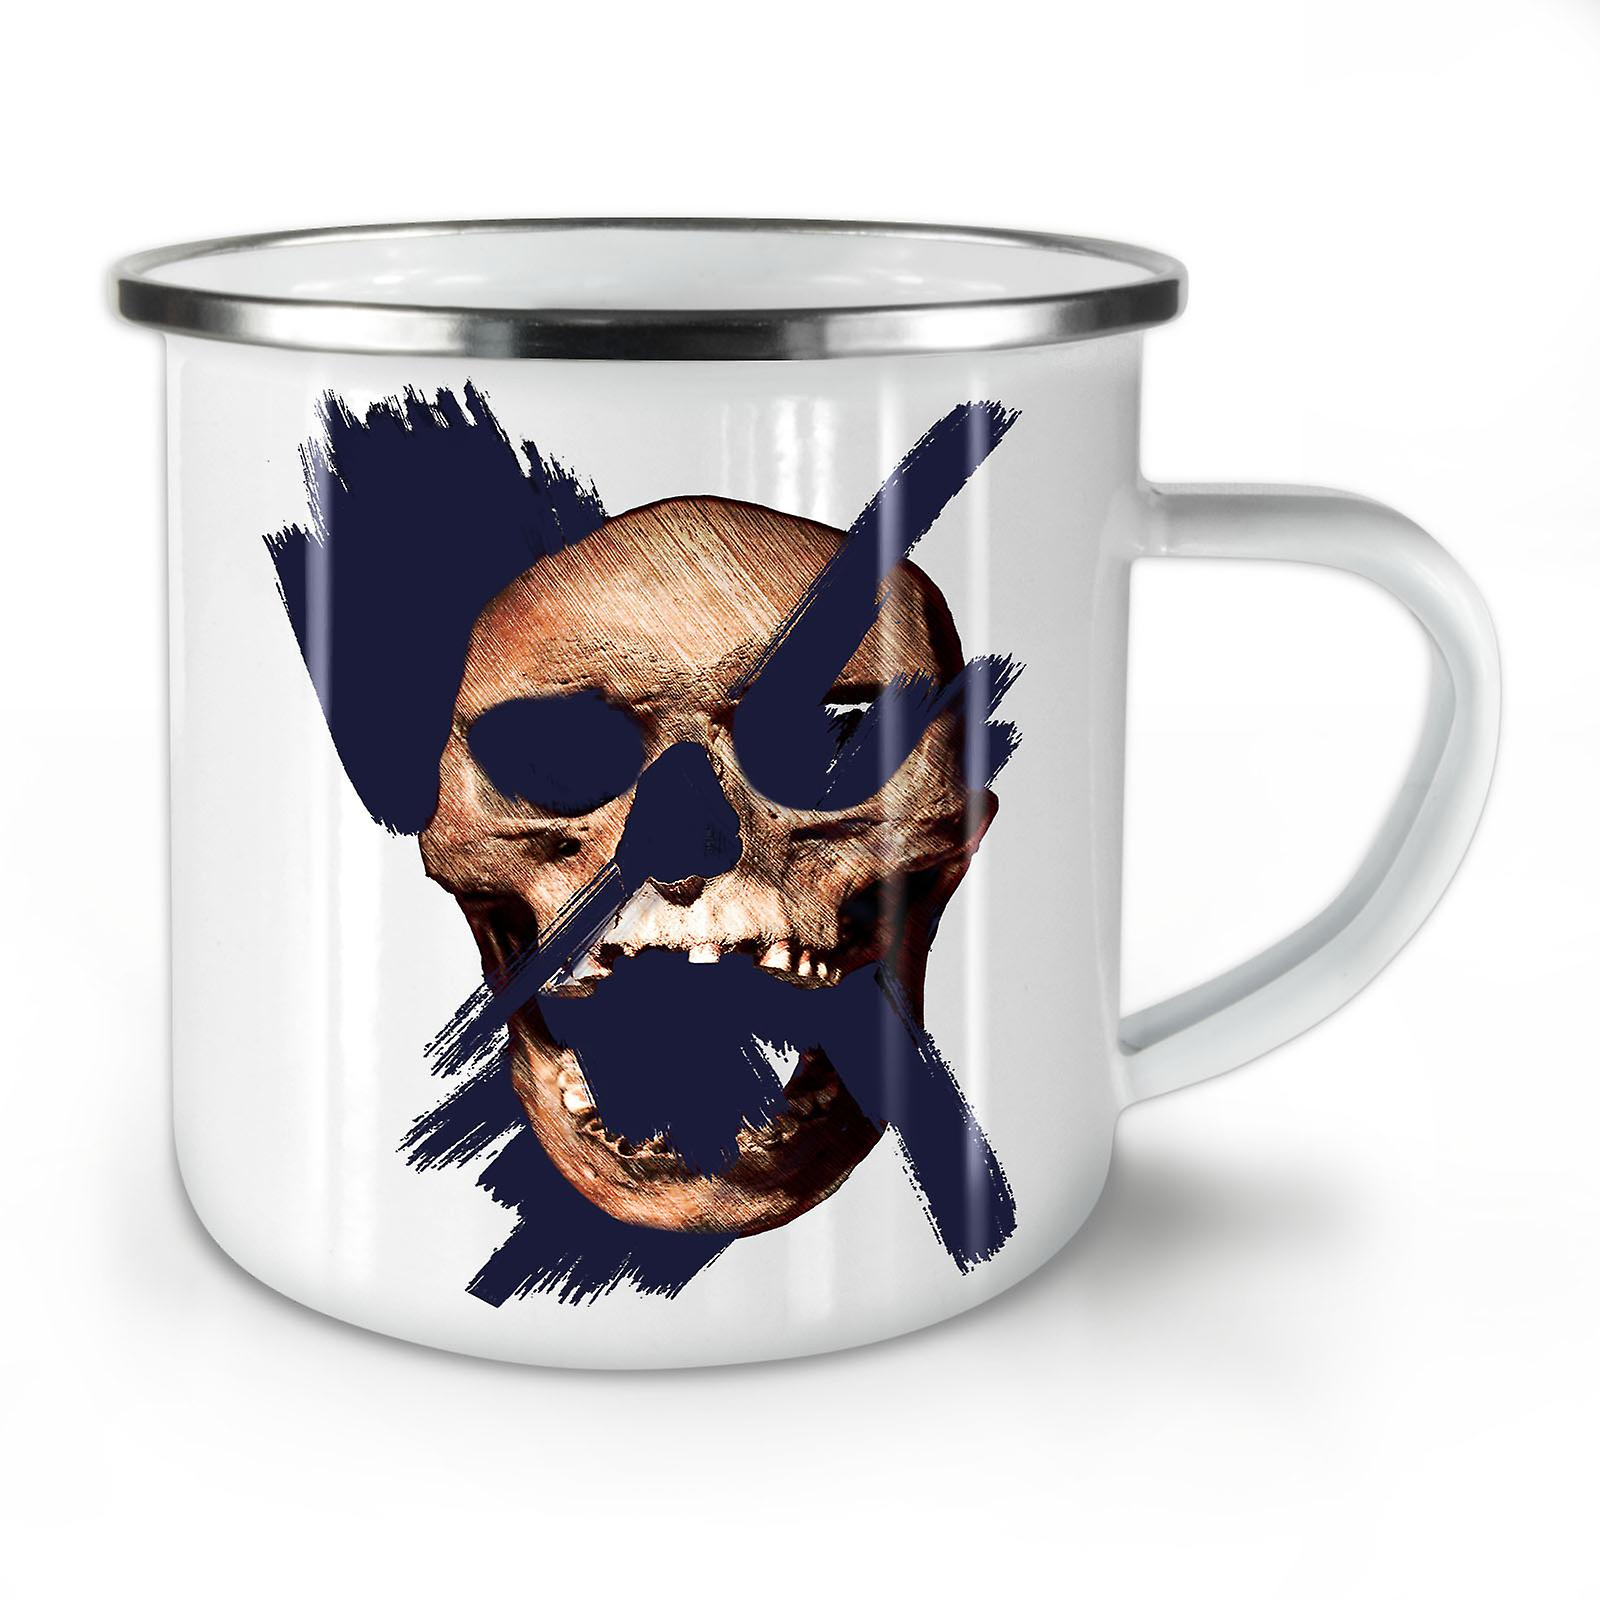 Mug10 Whitetea Metal Enamel Skull Guy Bad Coffee New OzWellcoda kXOPiZu